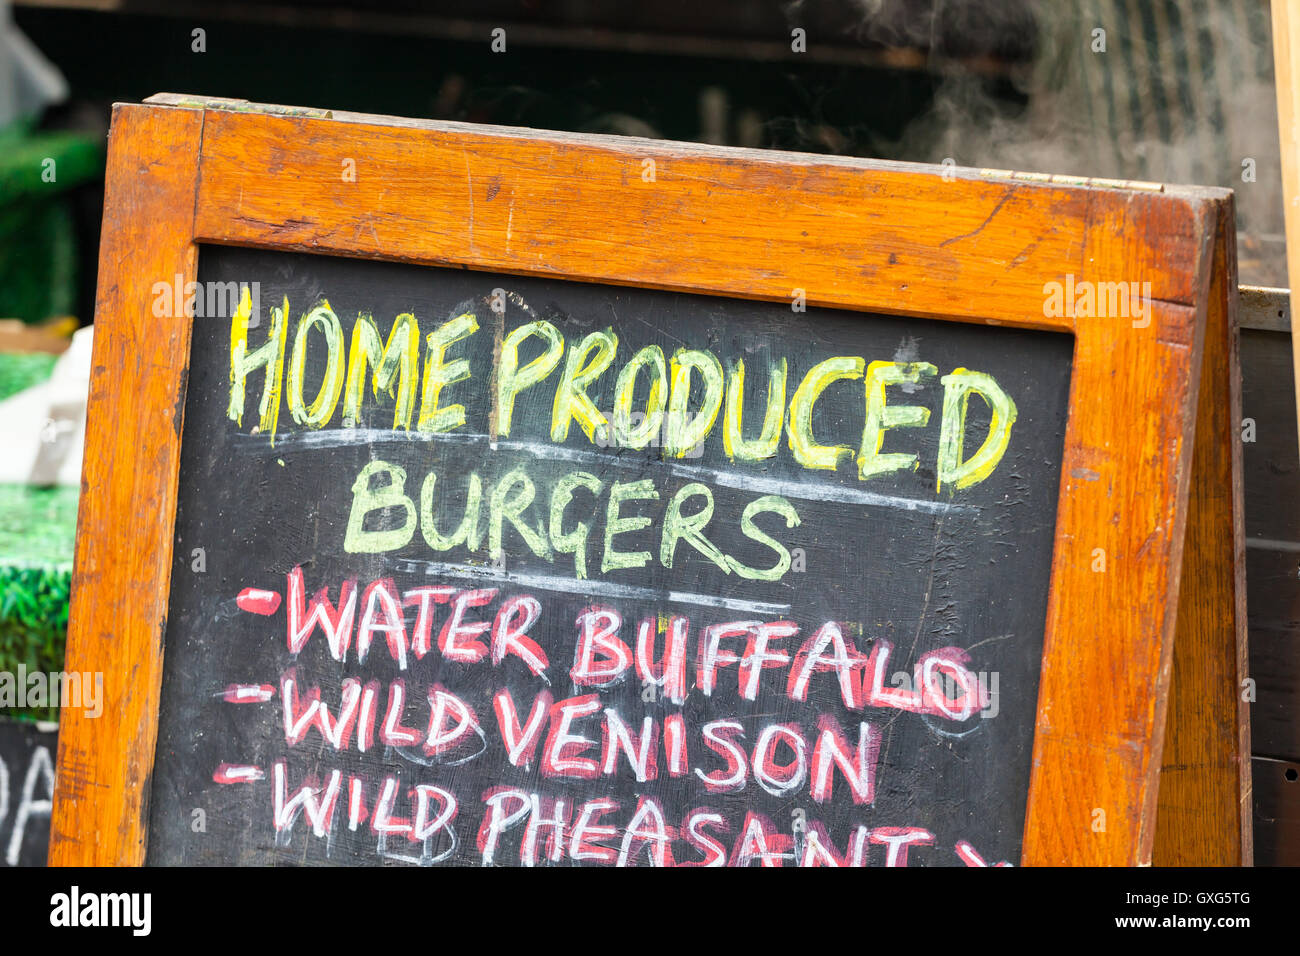 Home produced burgers sign - Stock Image